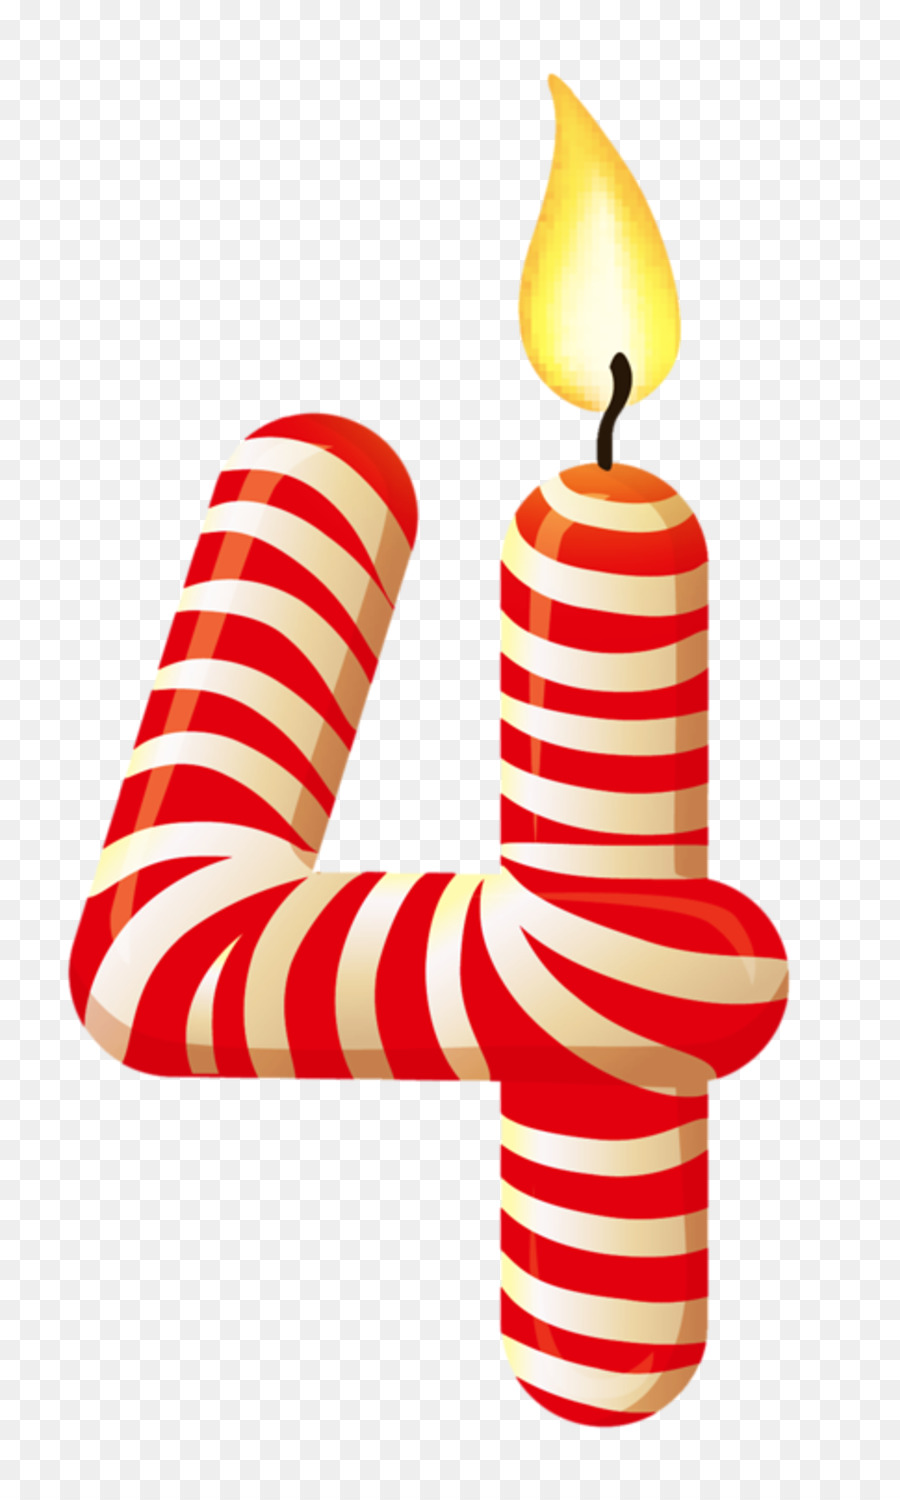 Birthday Candle Number Clip Art 1 Png Download 8001484 Free